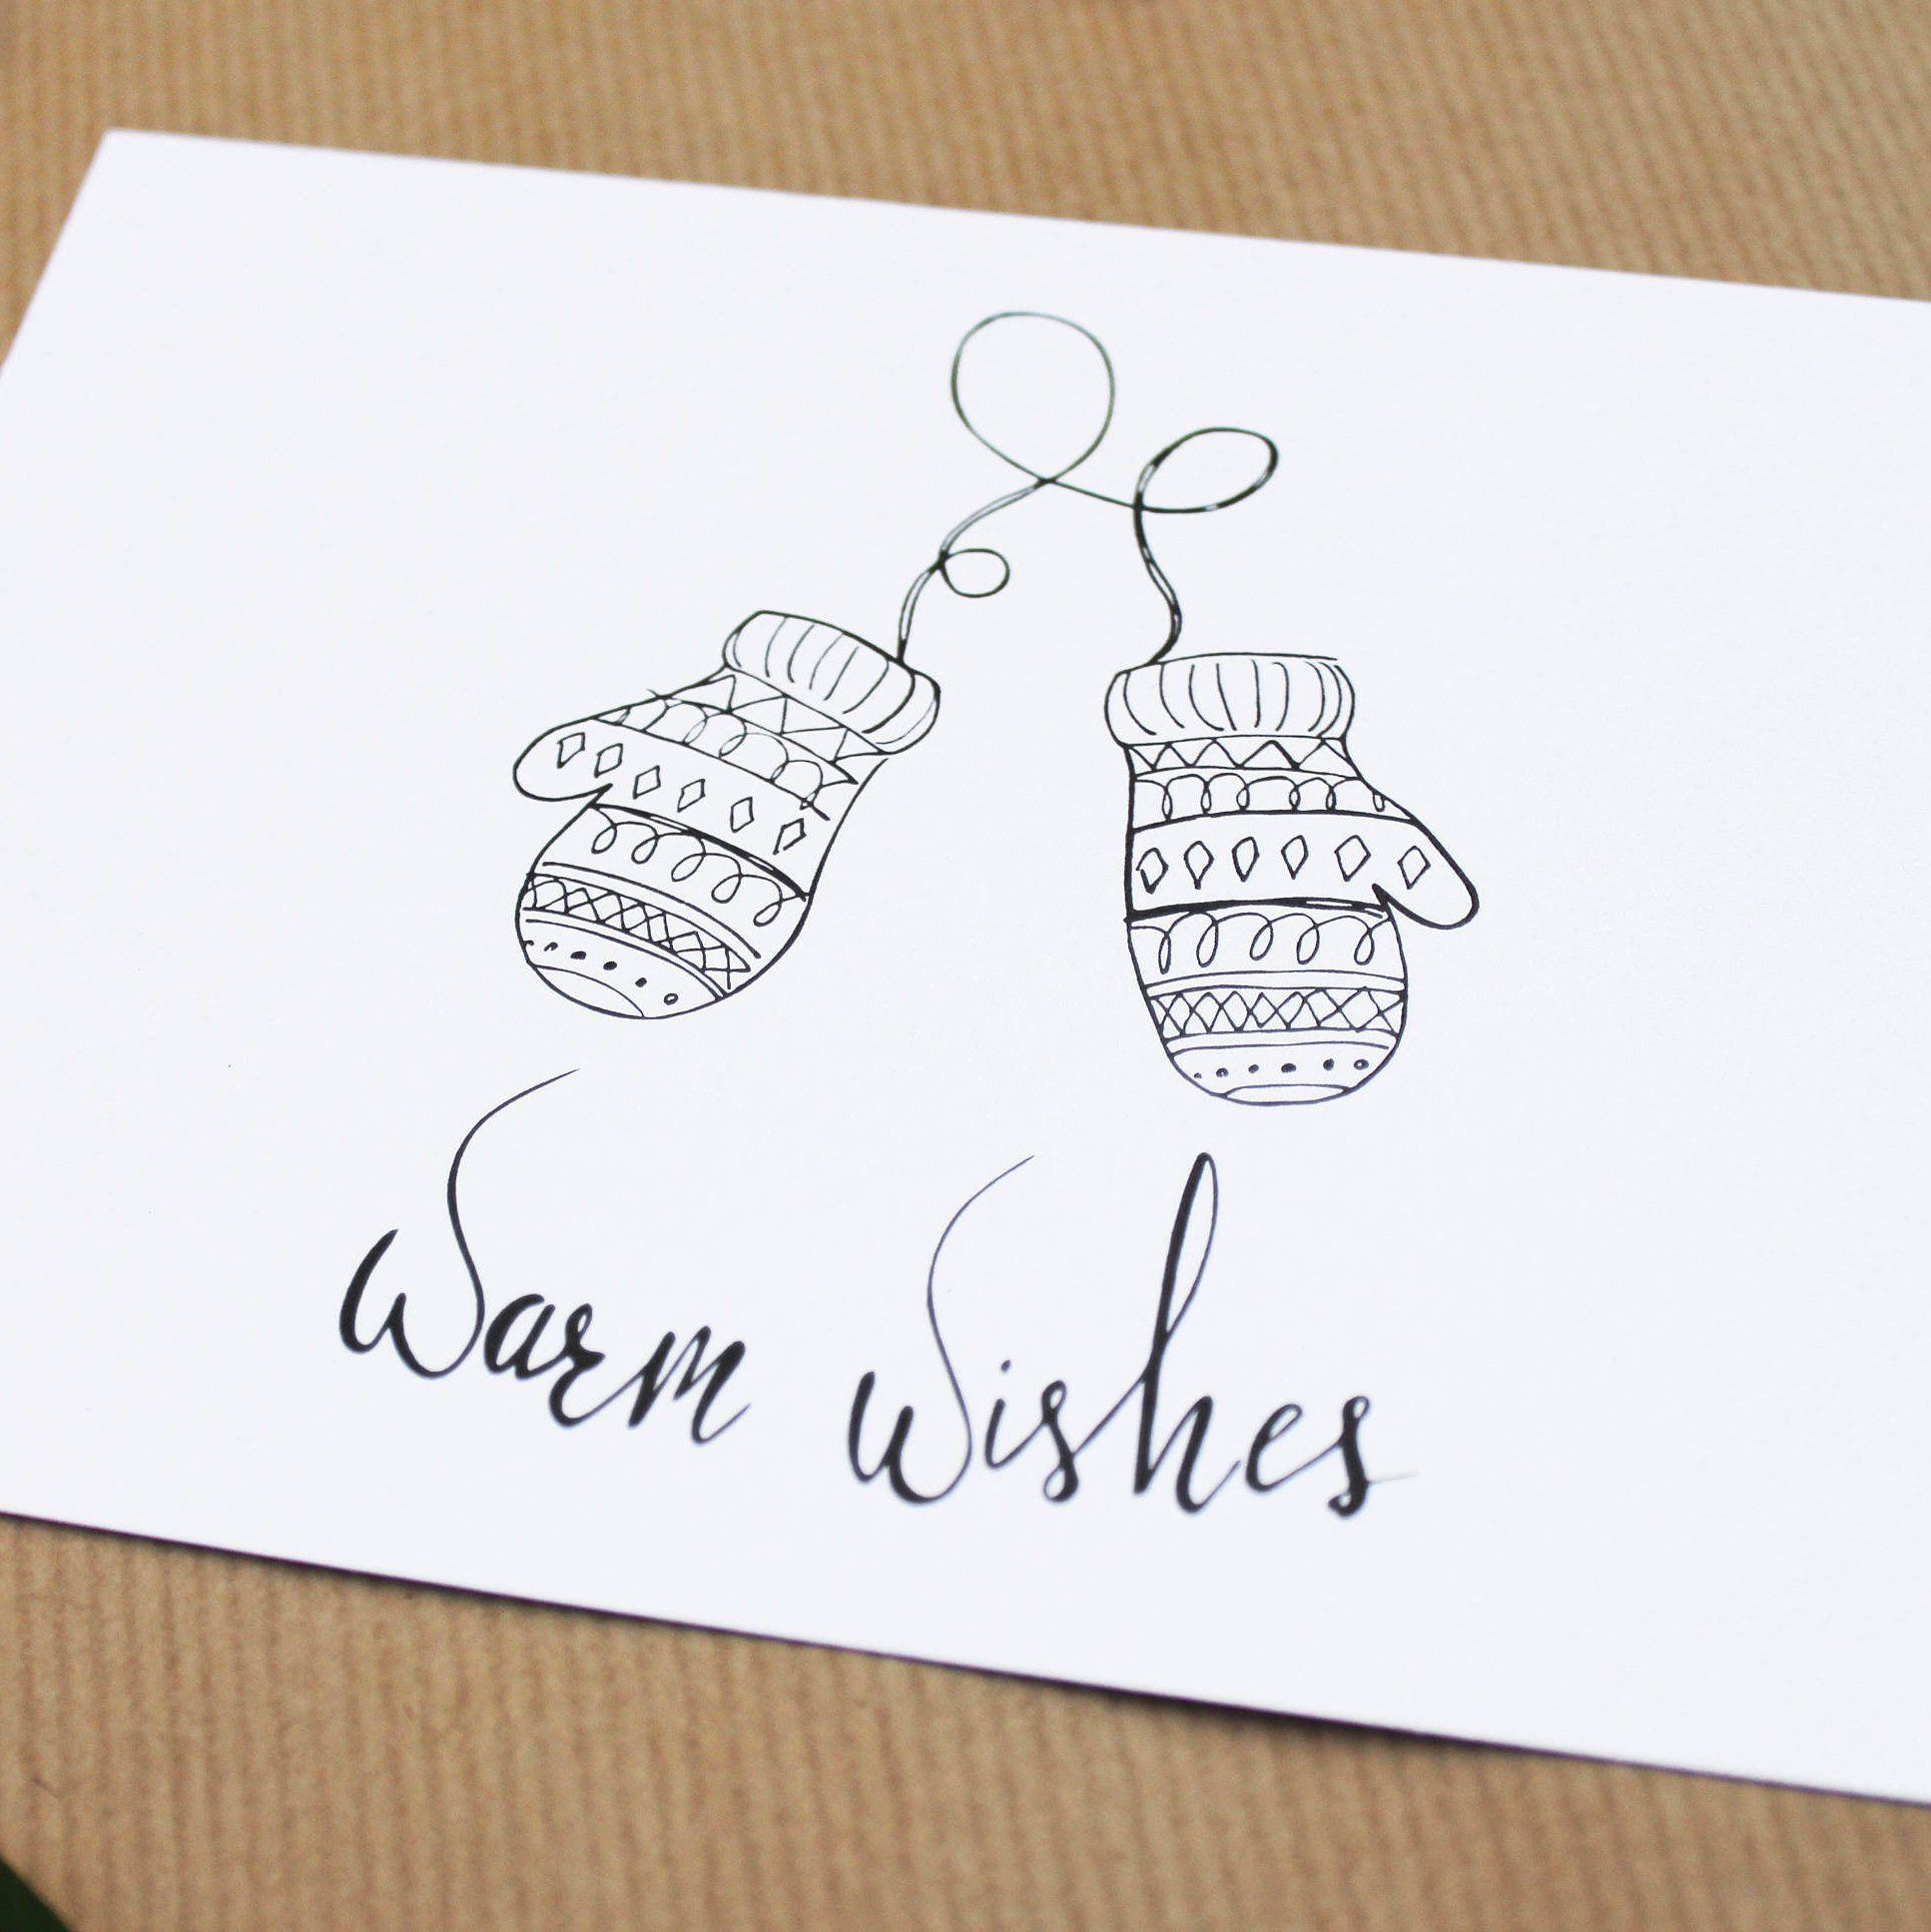 Warm wishes, christmas, new years card, postcard, hand drawn #christmascard #postcard #madebyhand